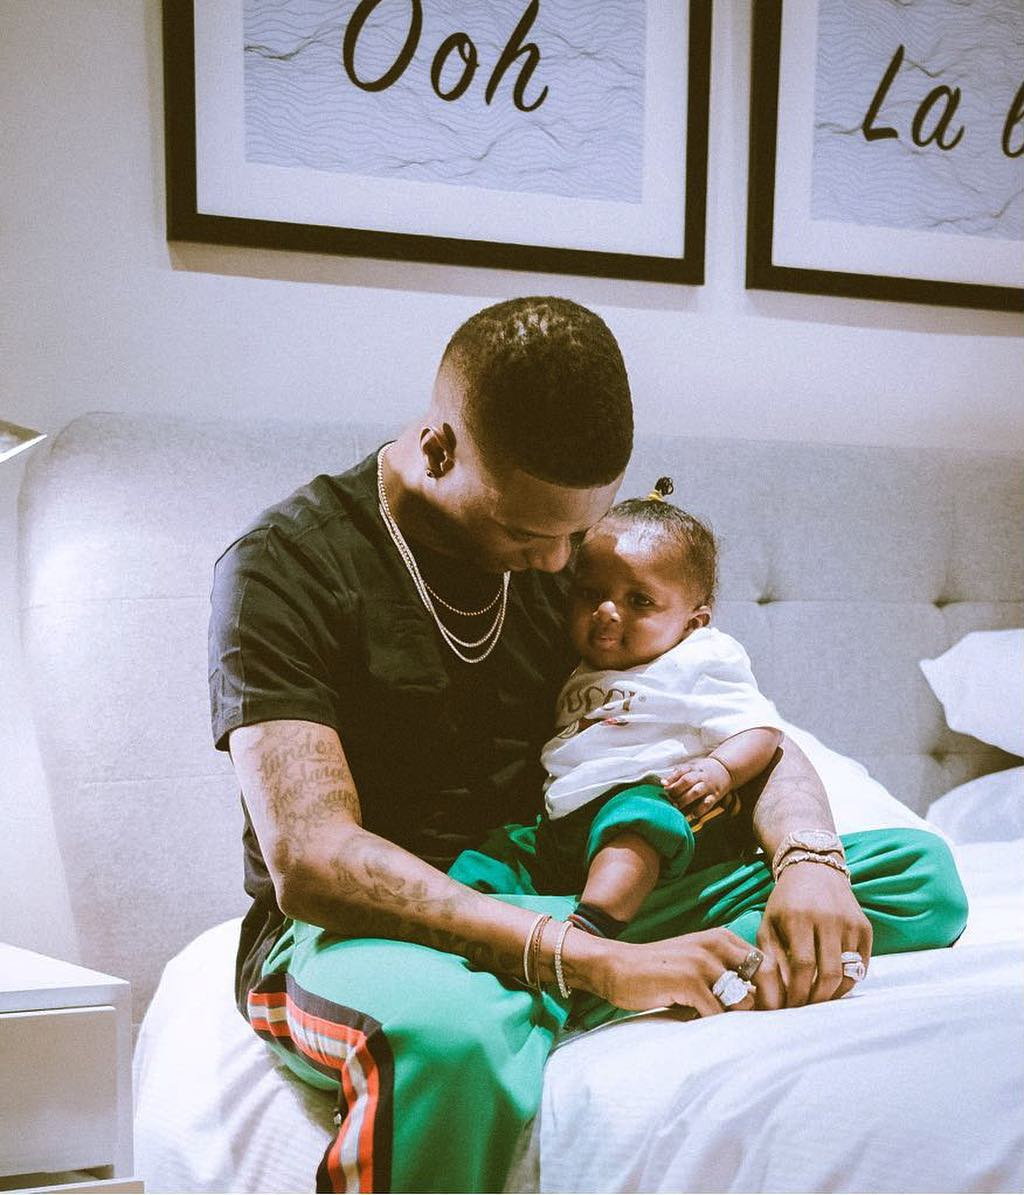 Wizkid Buys A Customized Iced-Out Gold Chain For His Third Son, Zion